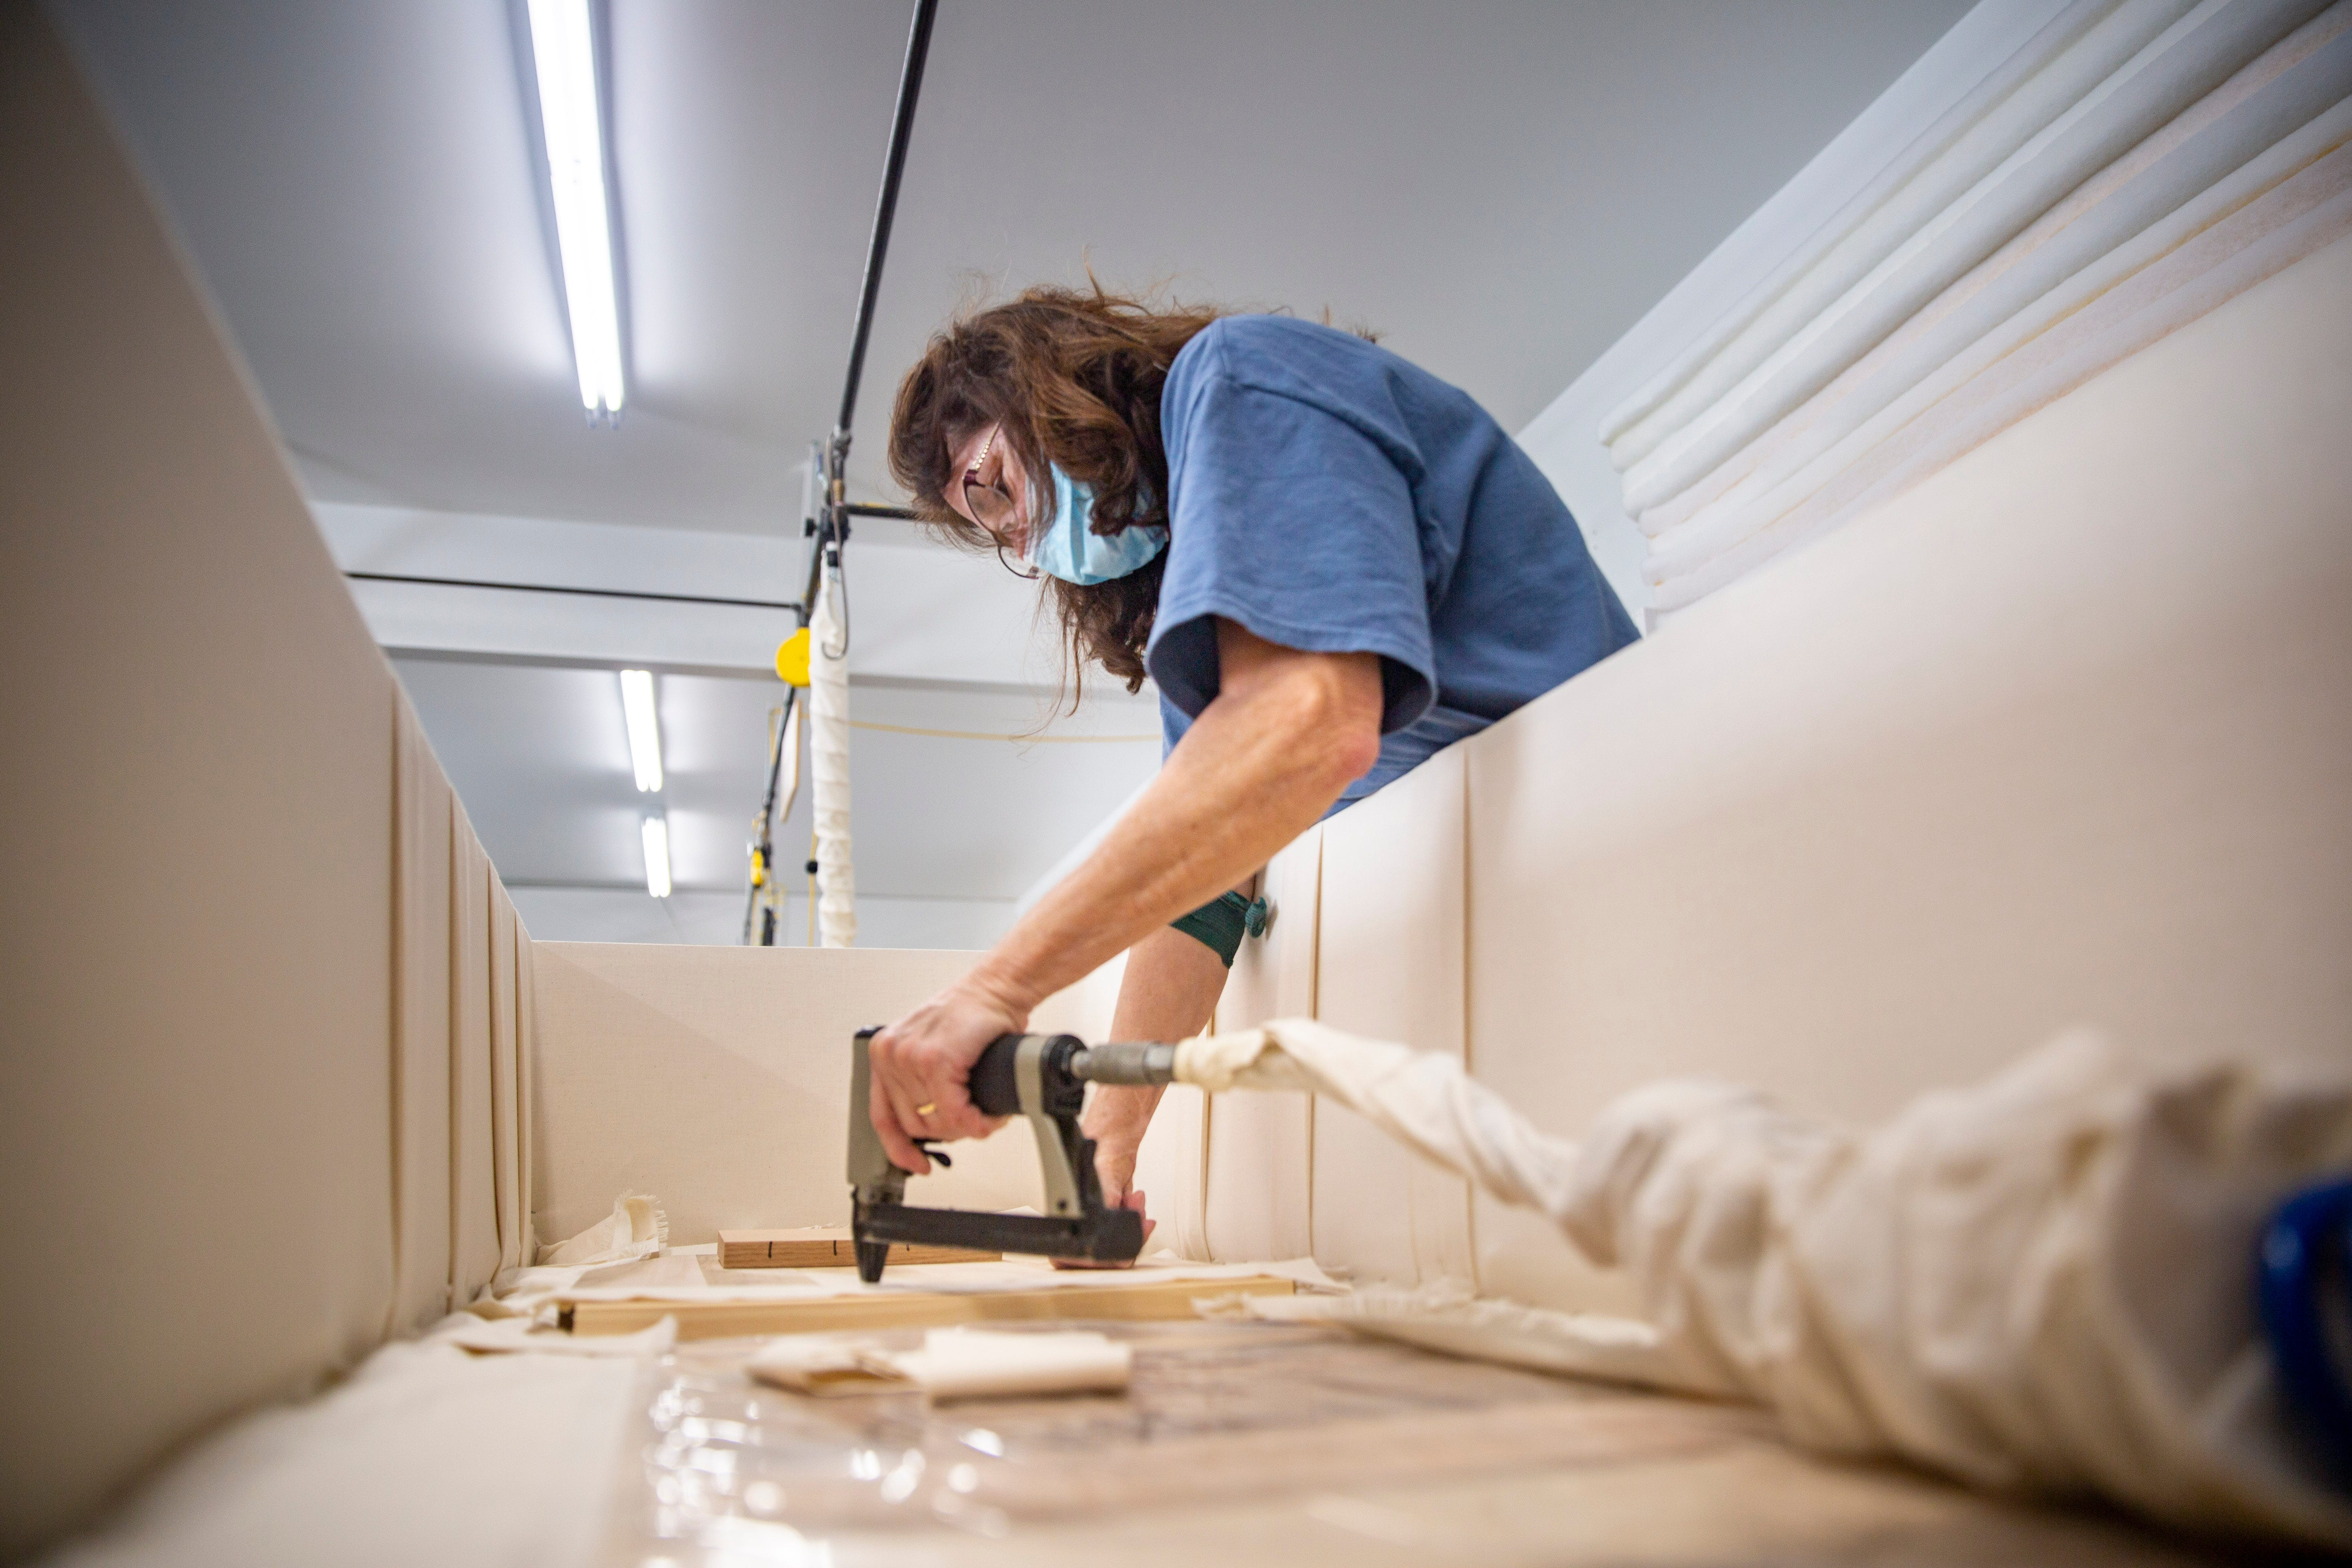 Upholsterer Cathy Freiburger builds the interior of a casket at the Trappist Caskets workshop at New Melleray Abbey on March 16, 2021.